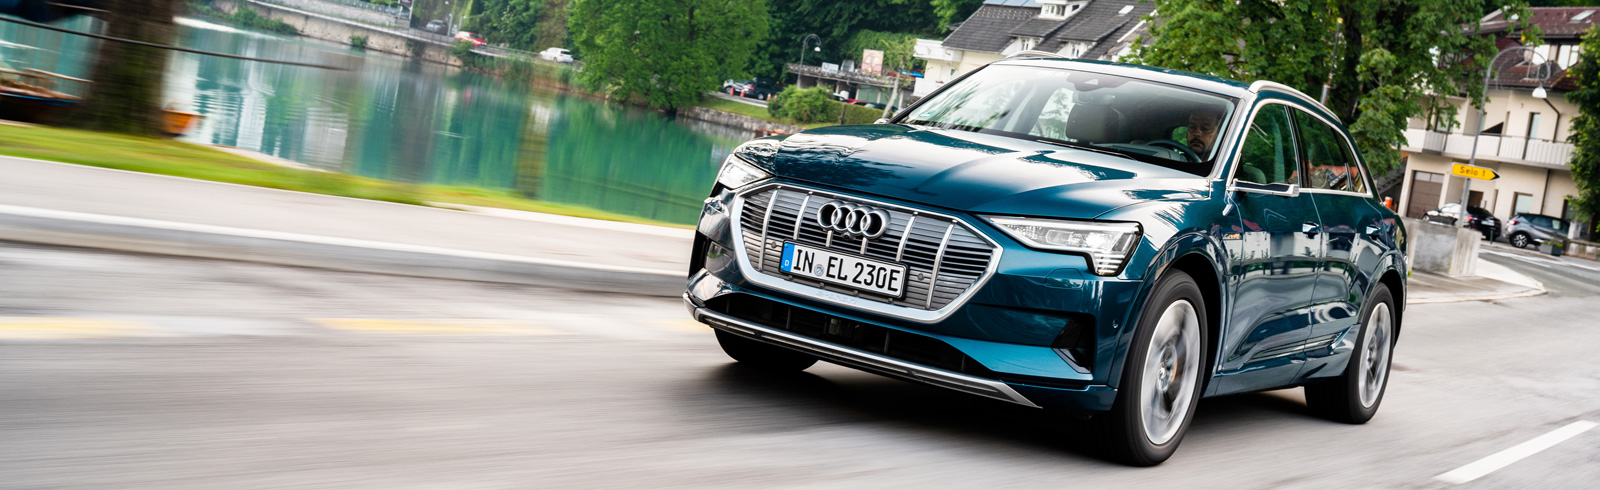 The Audi e-tron is the worldwide market leader in its segment